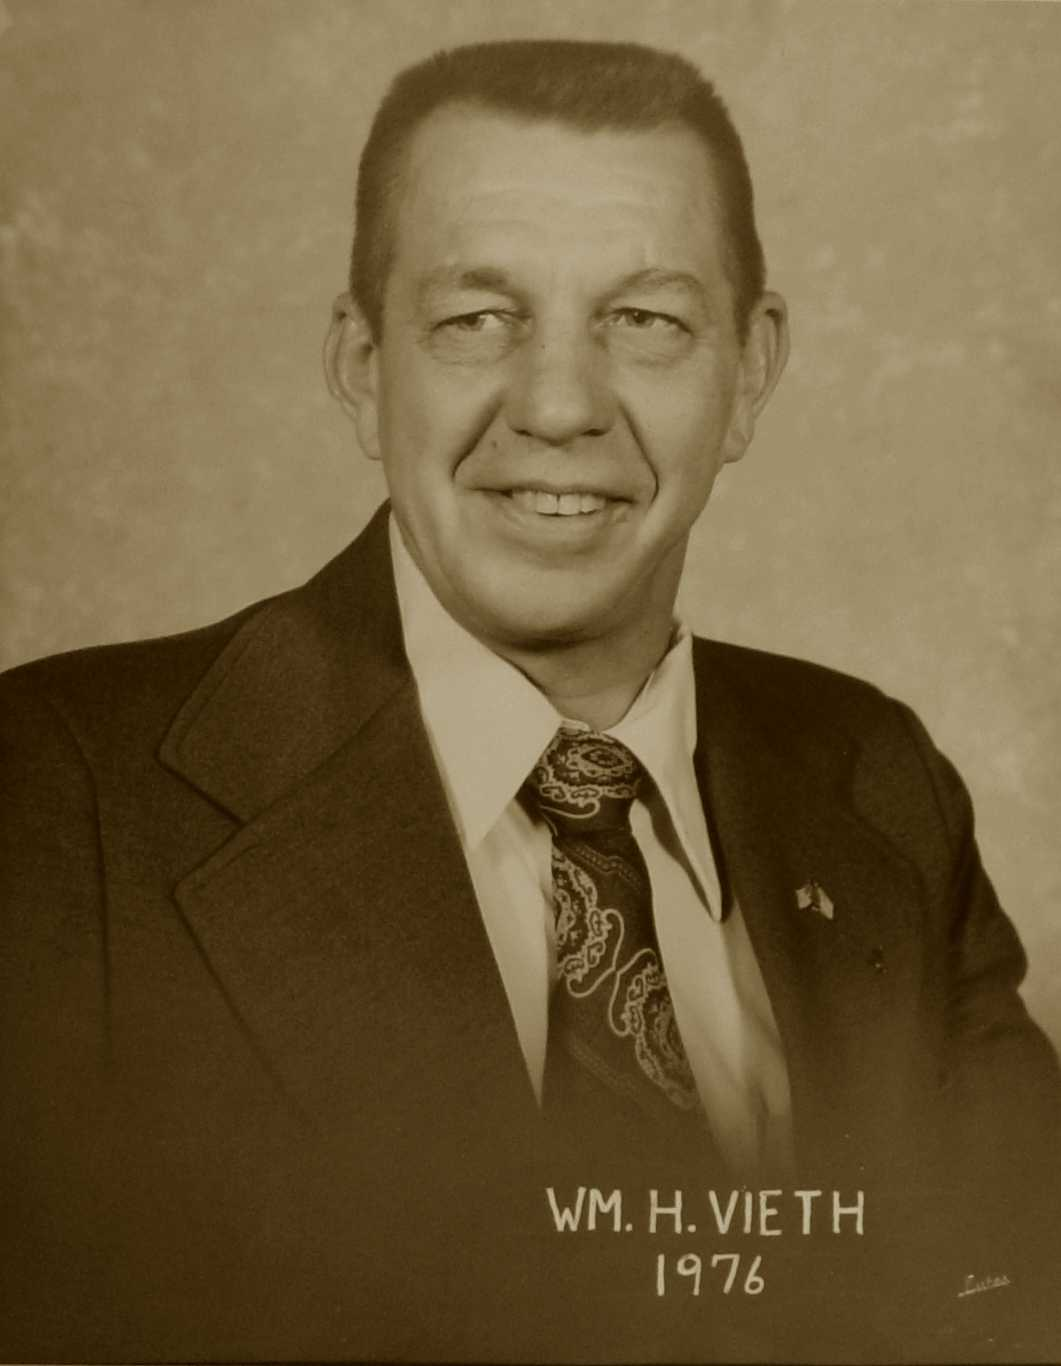 William H. Vieth, 1976